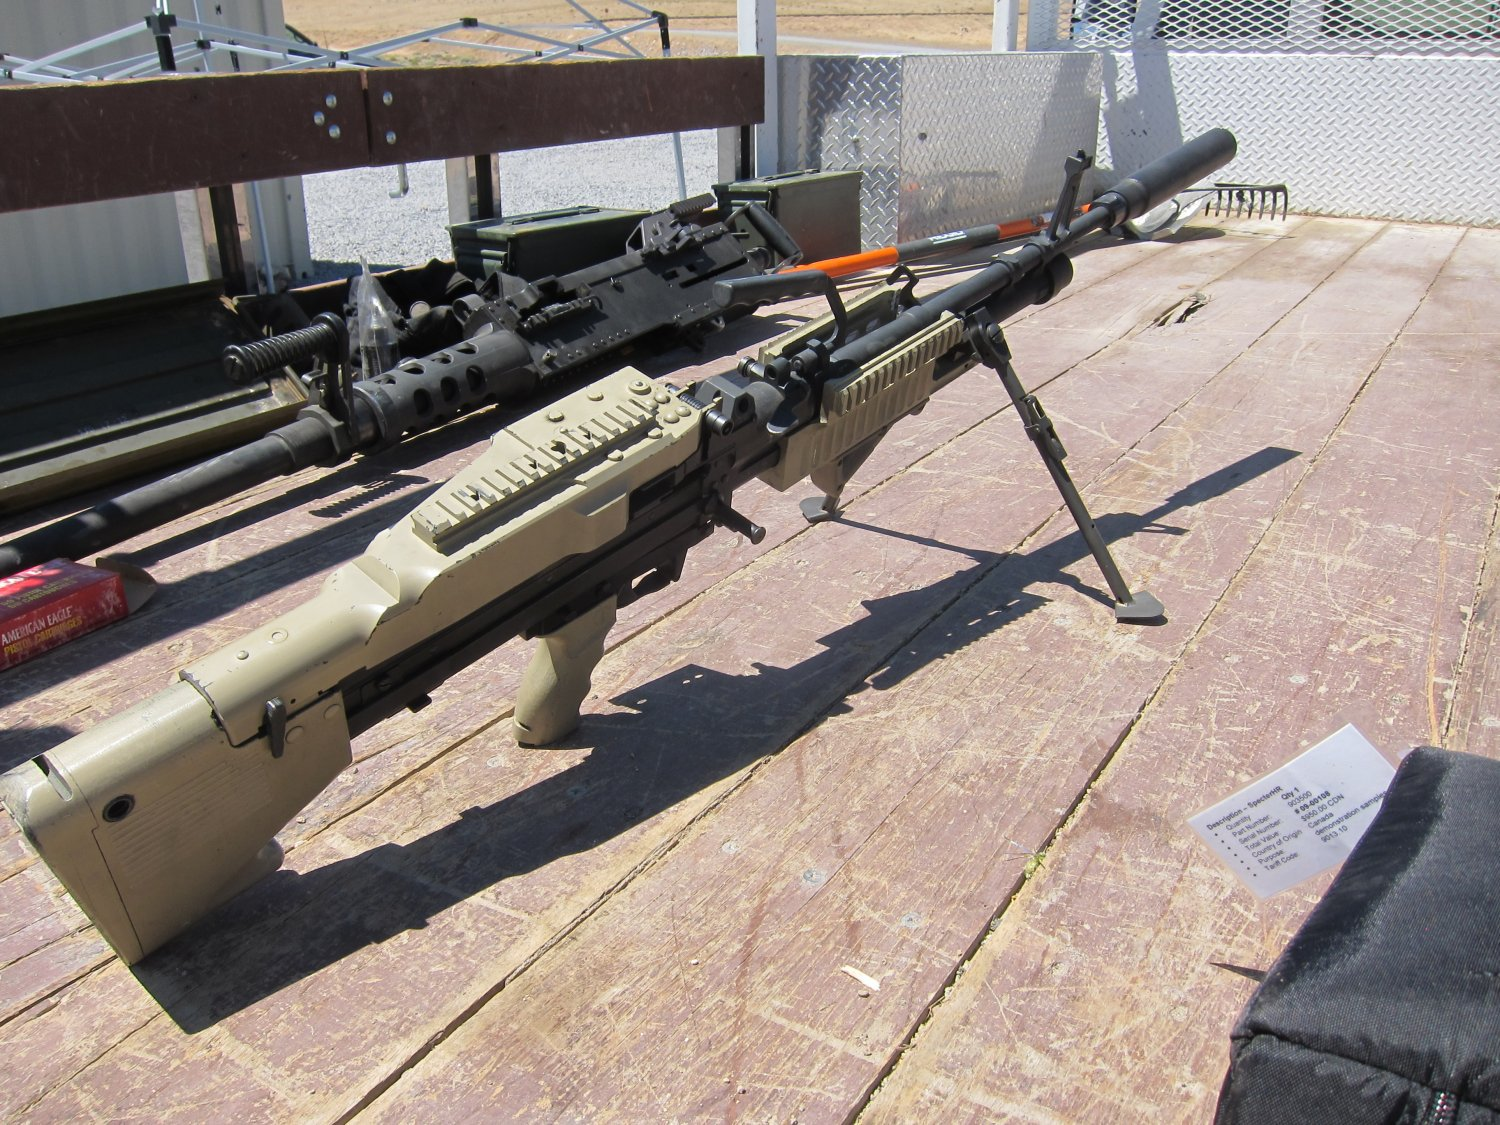 <!--:en-->U.S. Ordnance Mk43 Mod 1/M60E4 Commando 7.62mm NATO Medium Machine Gun (MMG) for Special Operations Forces (U.S. Navy SEALs): Latest-Version Weapon Gets Test-Fired at the Range (Video!) <!--:-->